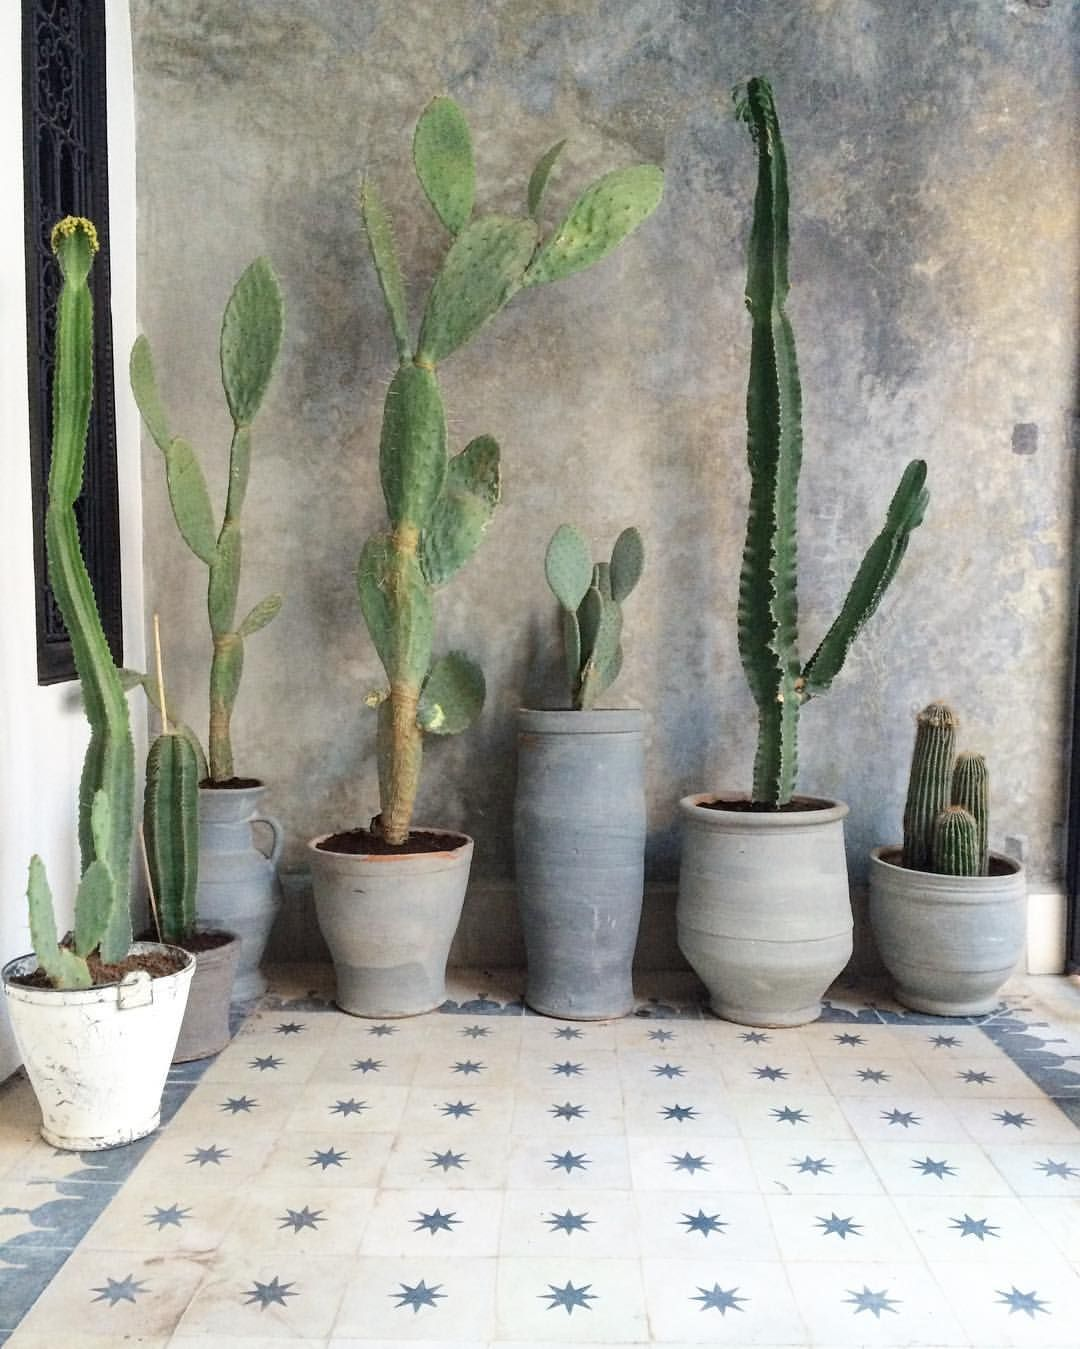 Floor Plants Indoor Wabi Sabi Inspiration Interior Design Bathroom Design